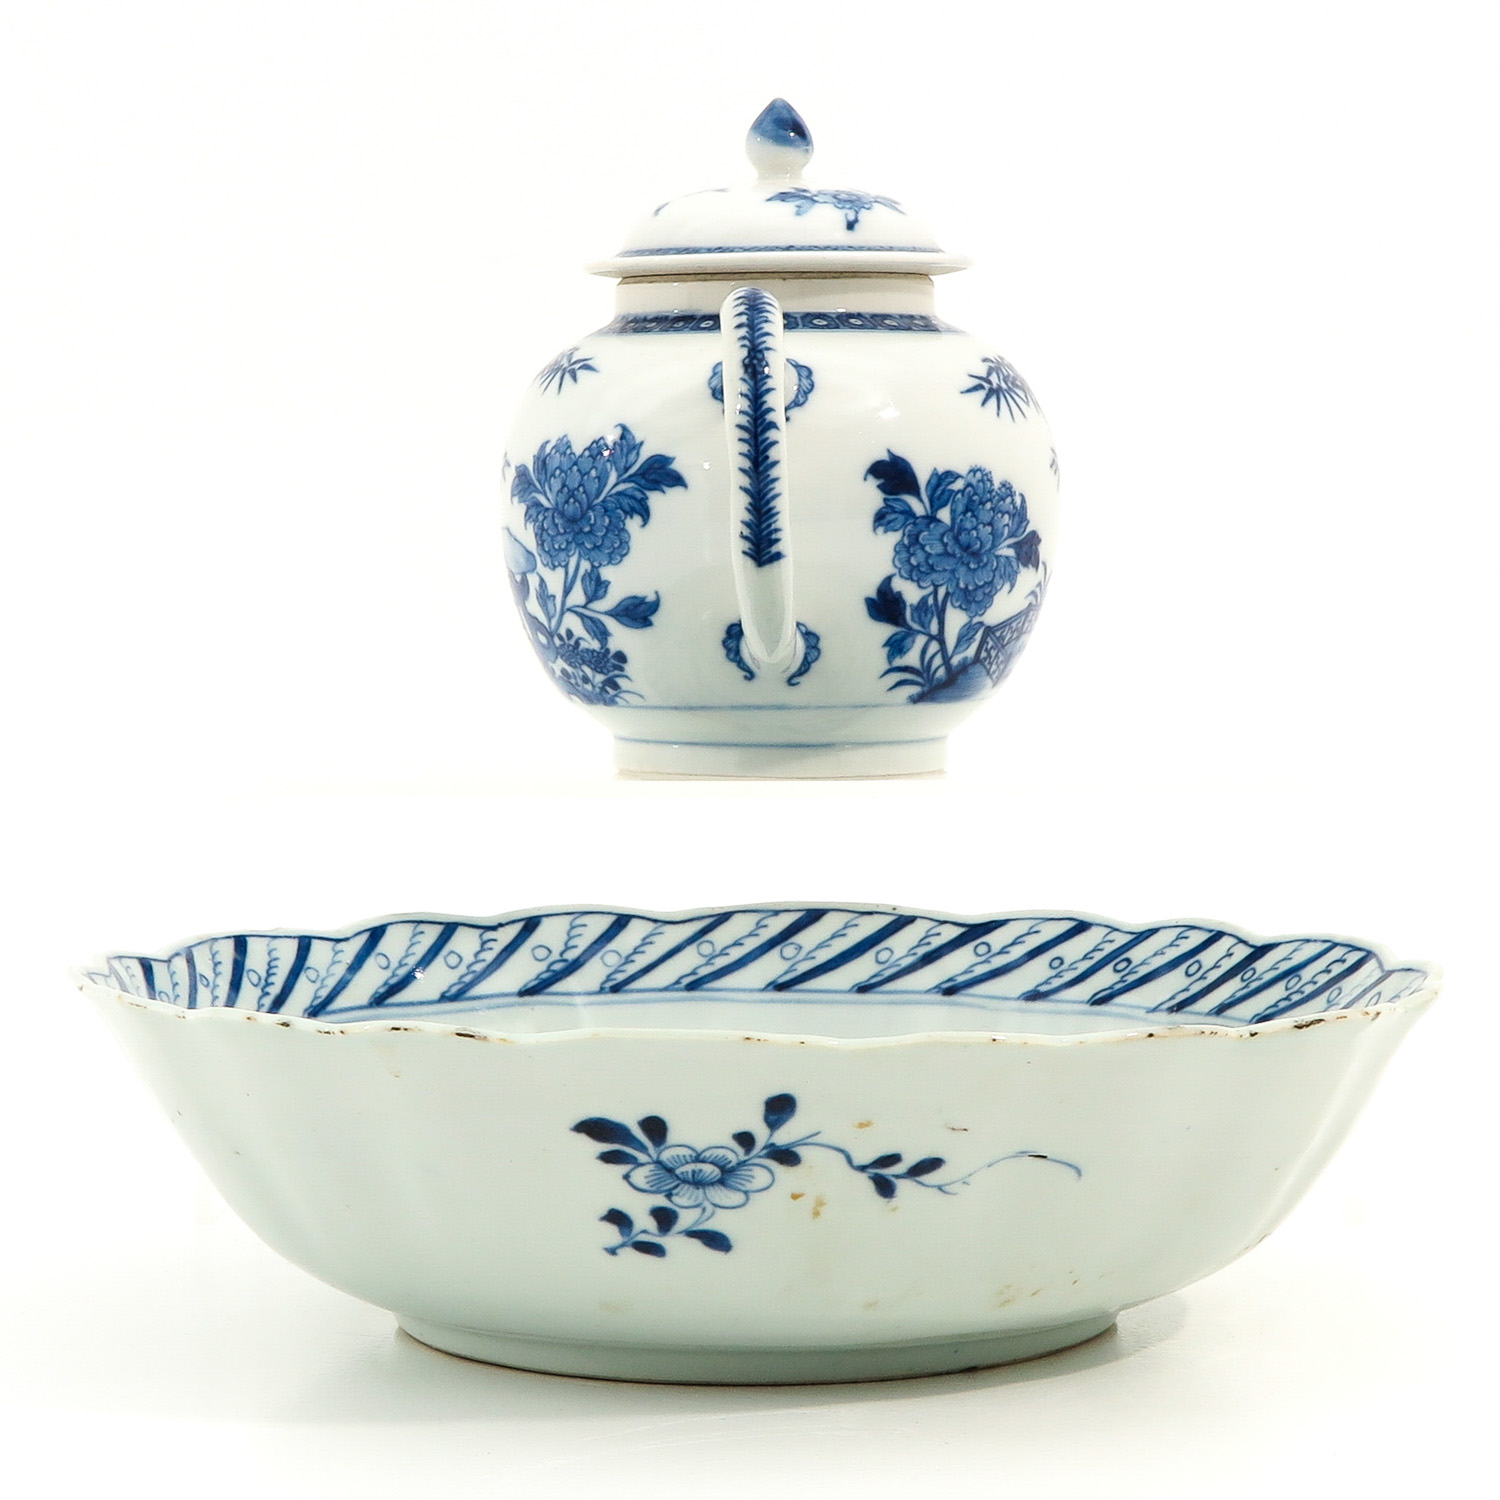 A Blue and White Bowl and Teapot - Image 2 of 10